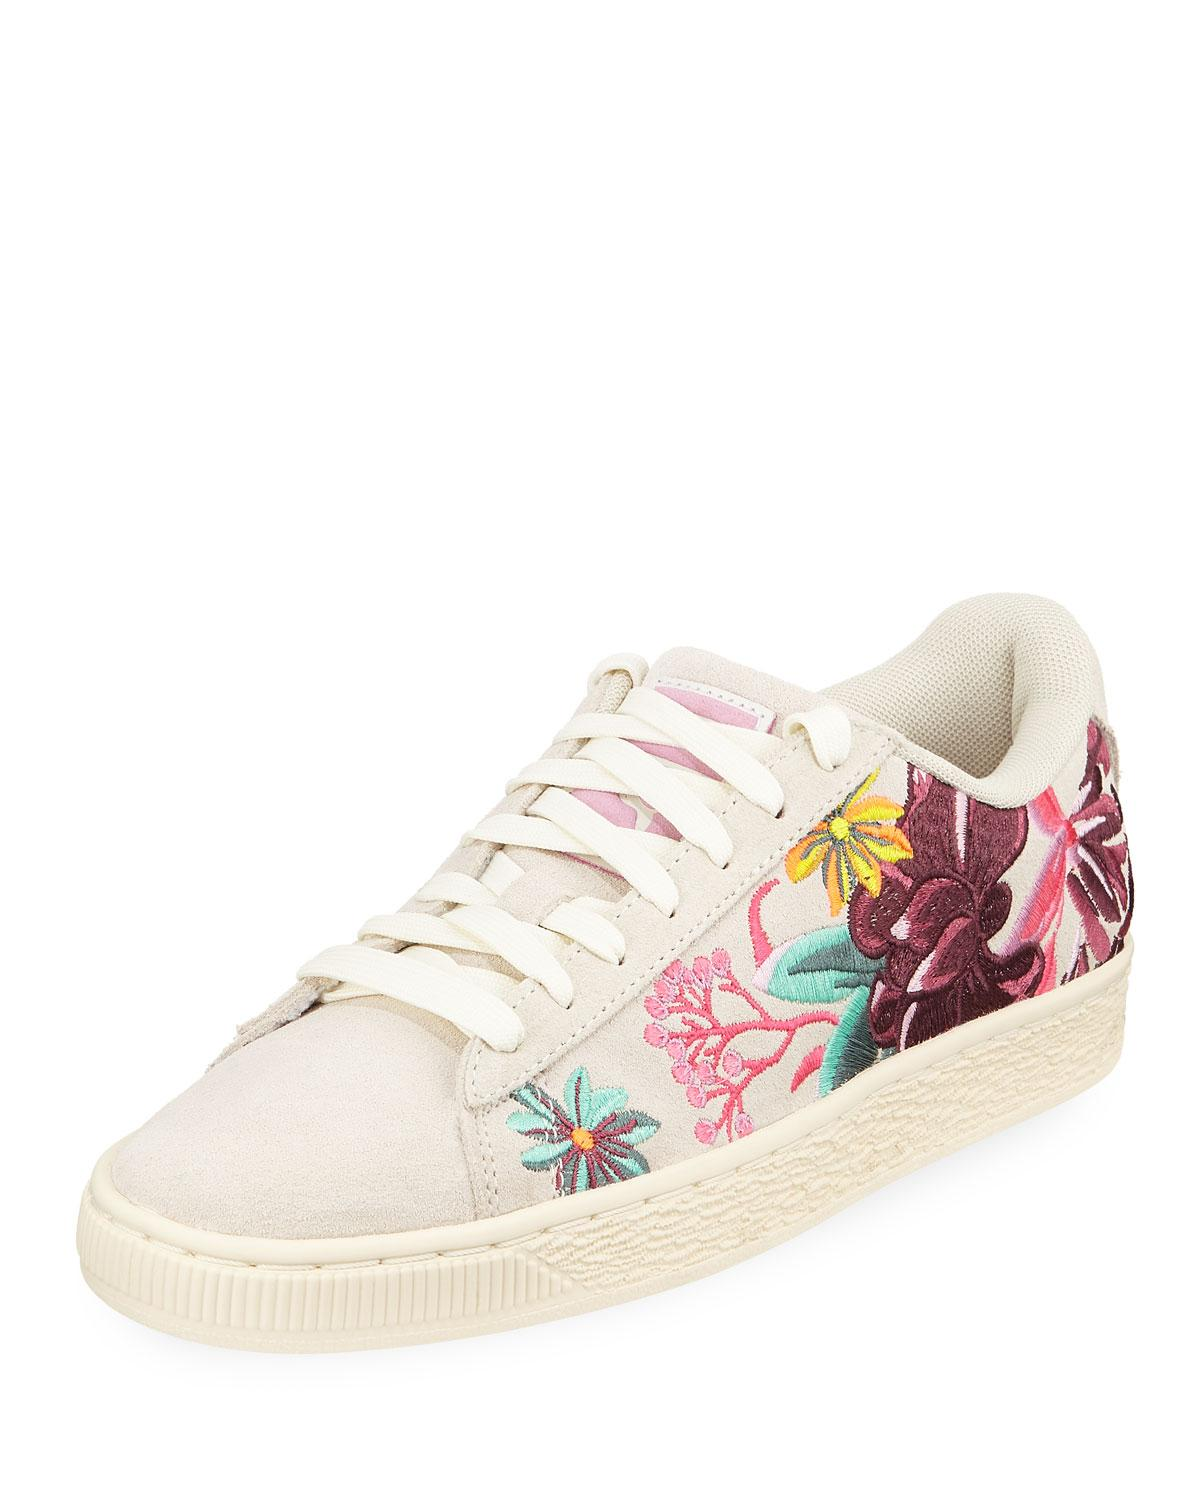 20f3e91584c Lyst - PUMA Suede Hyper Embellished Low-top Sneakers - Save 19%